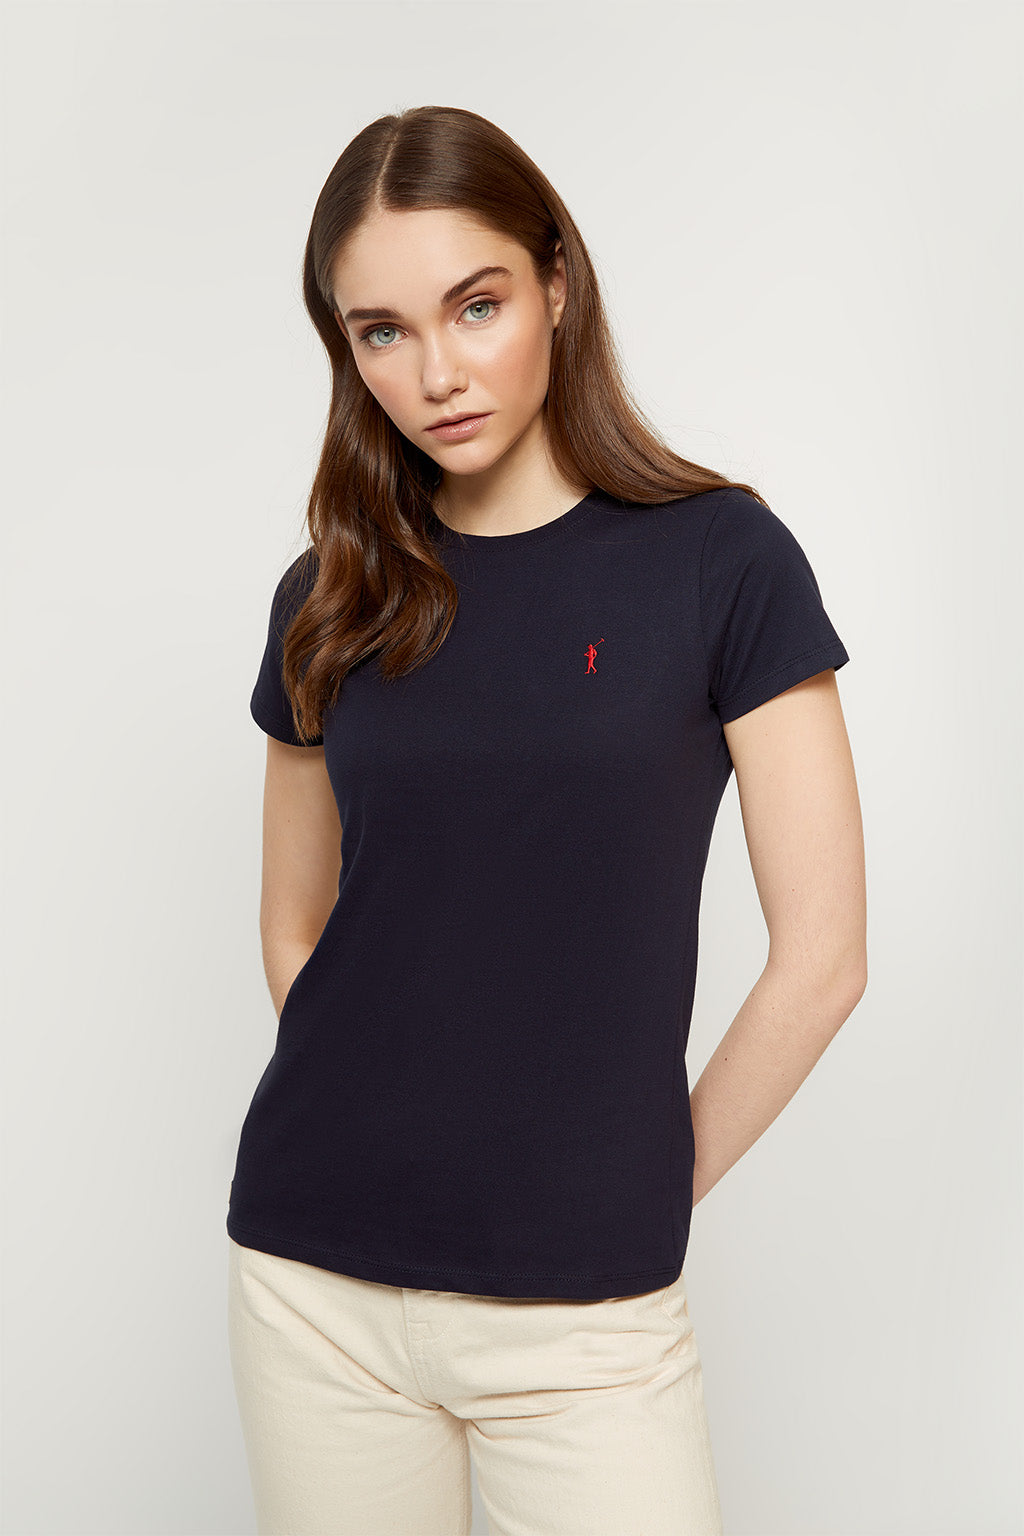 Navy blue tee with embroidered logo